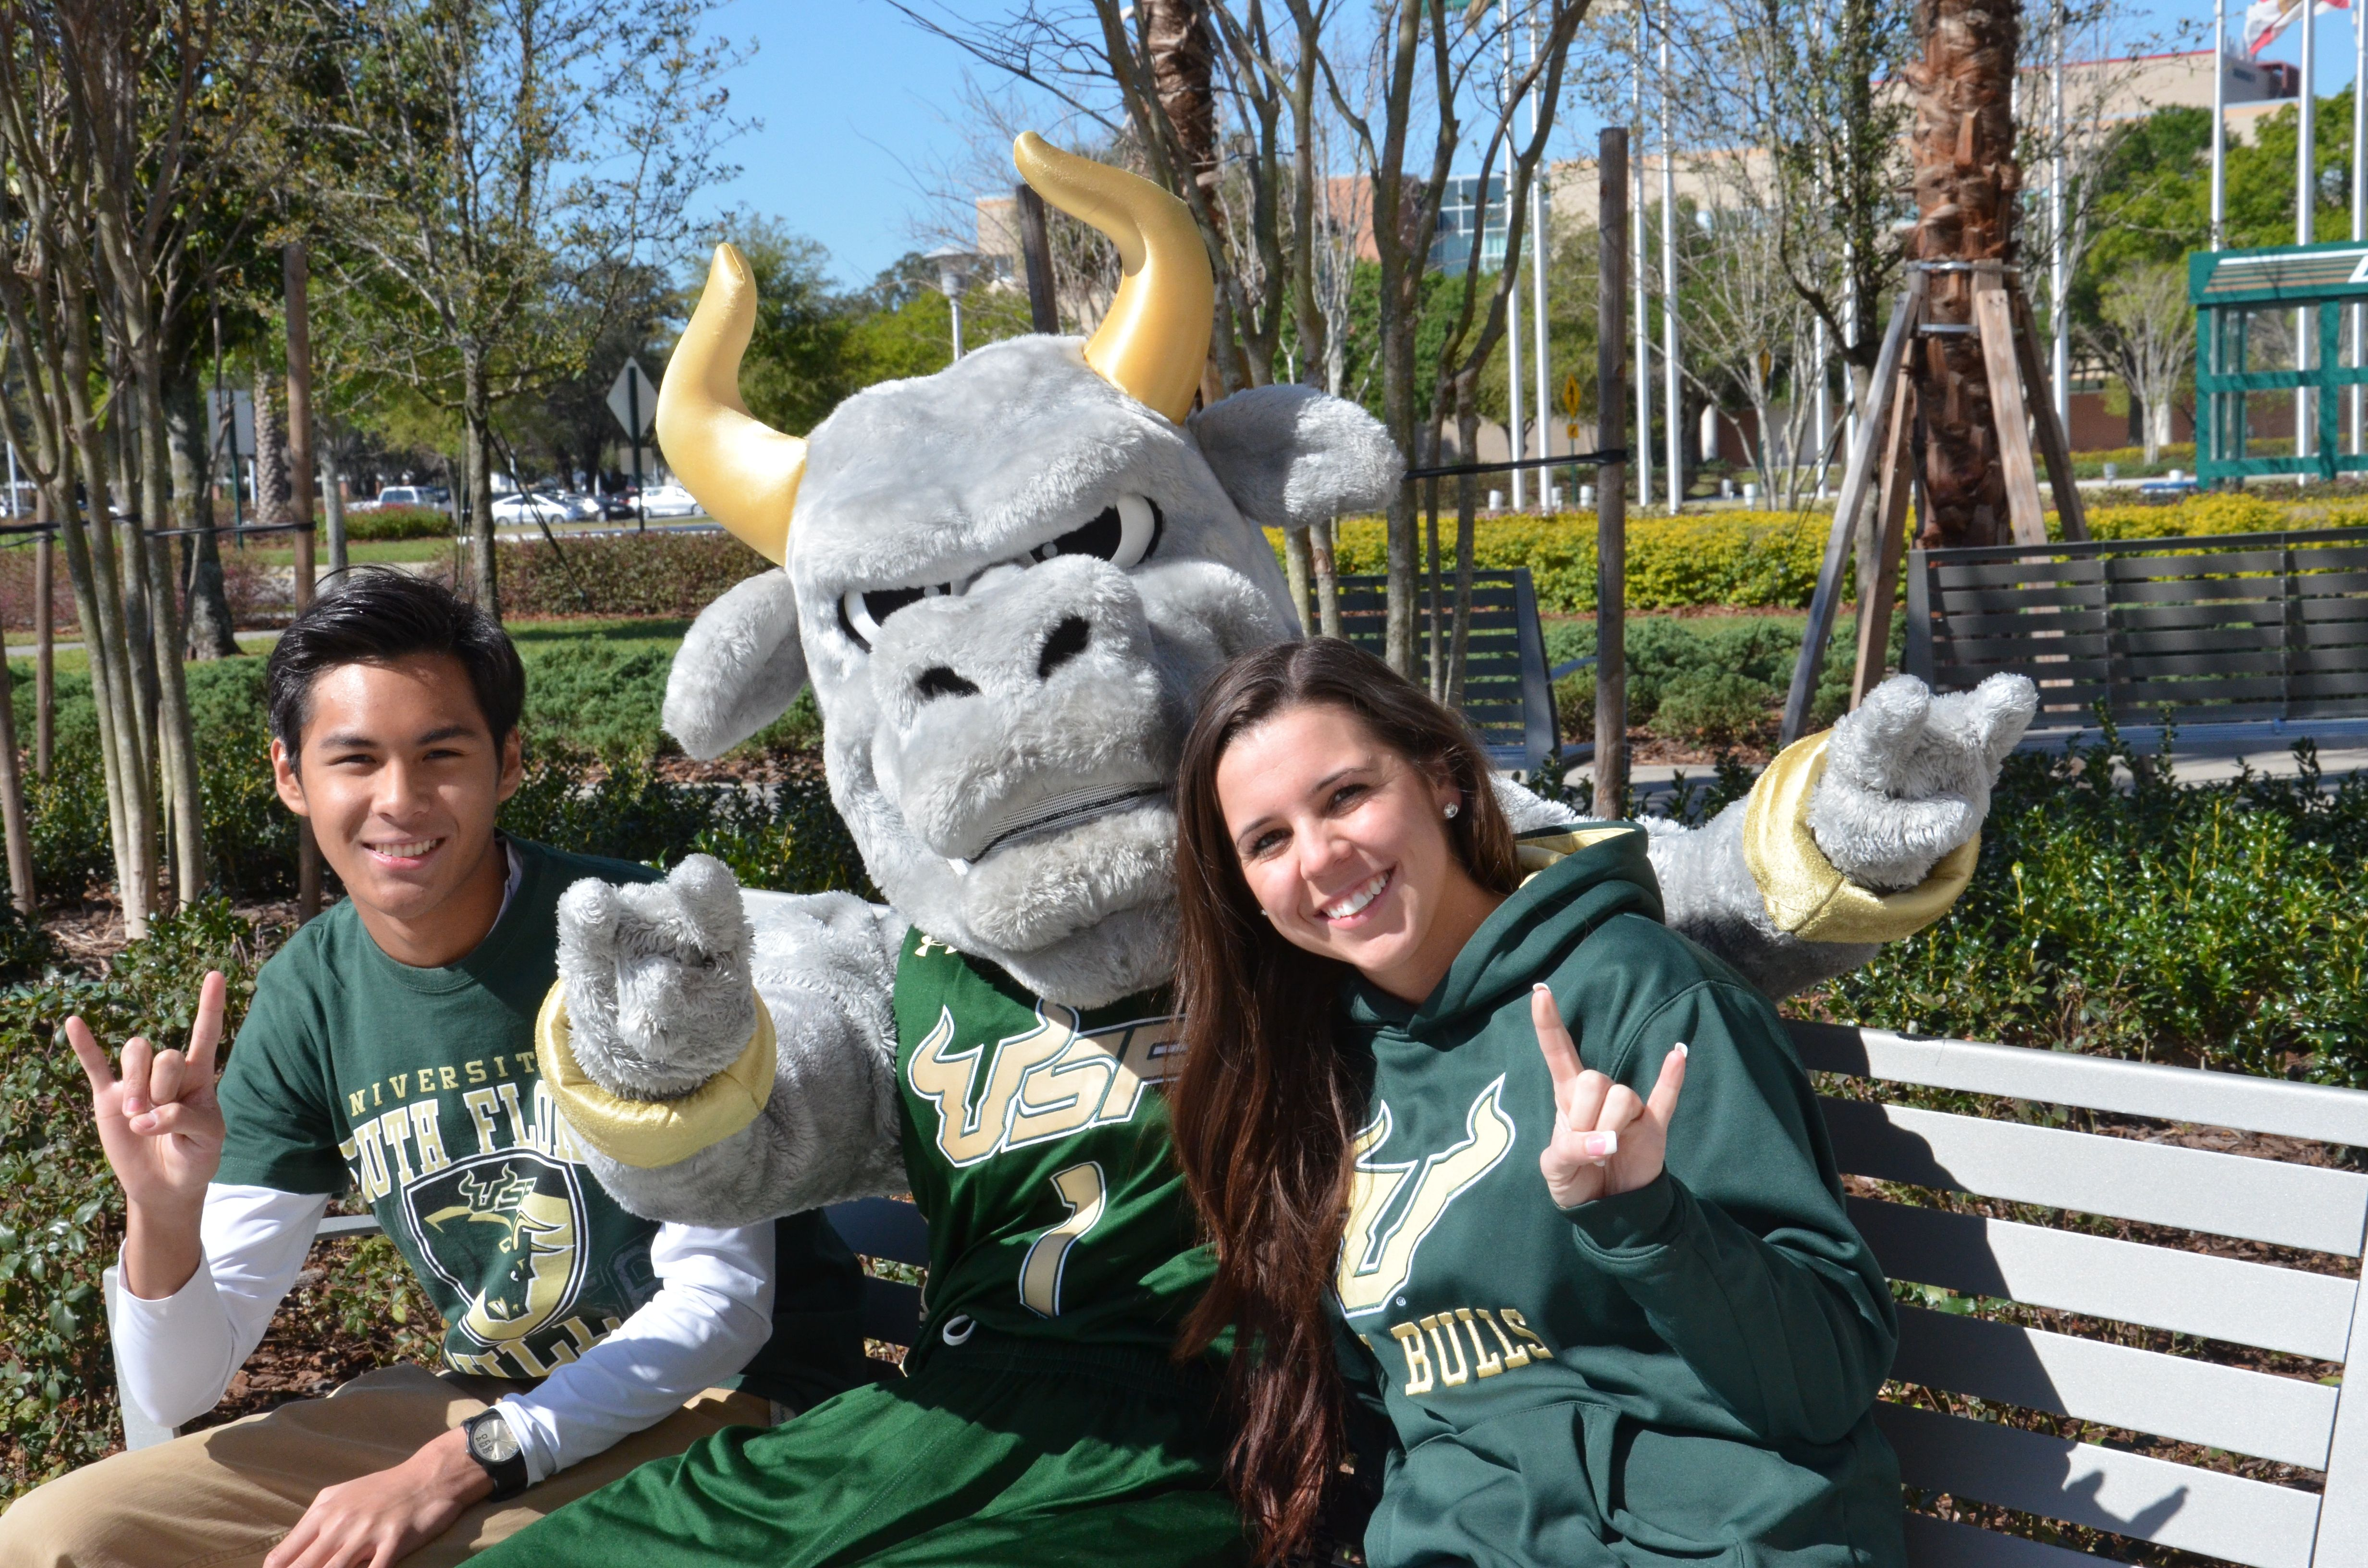 Rocky With Usf Students Throwing Up The Bull Horns At Collins Park Usf University Of South Florida South Florida Bulls